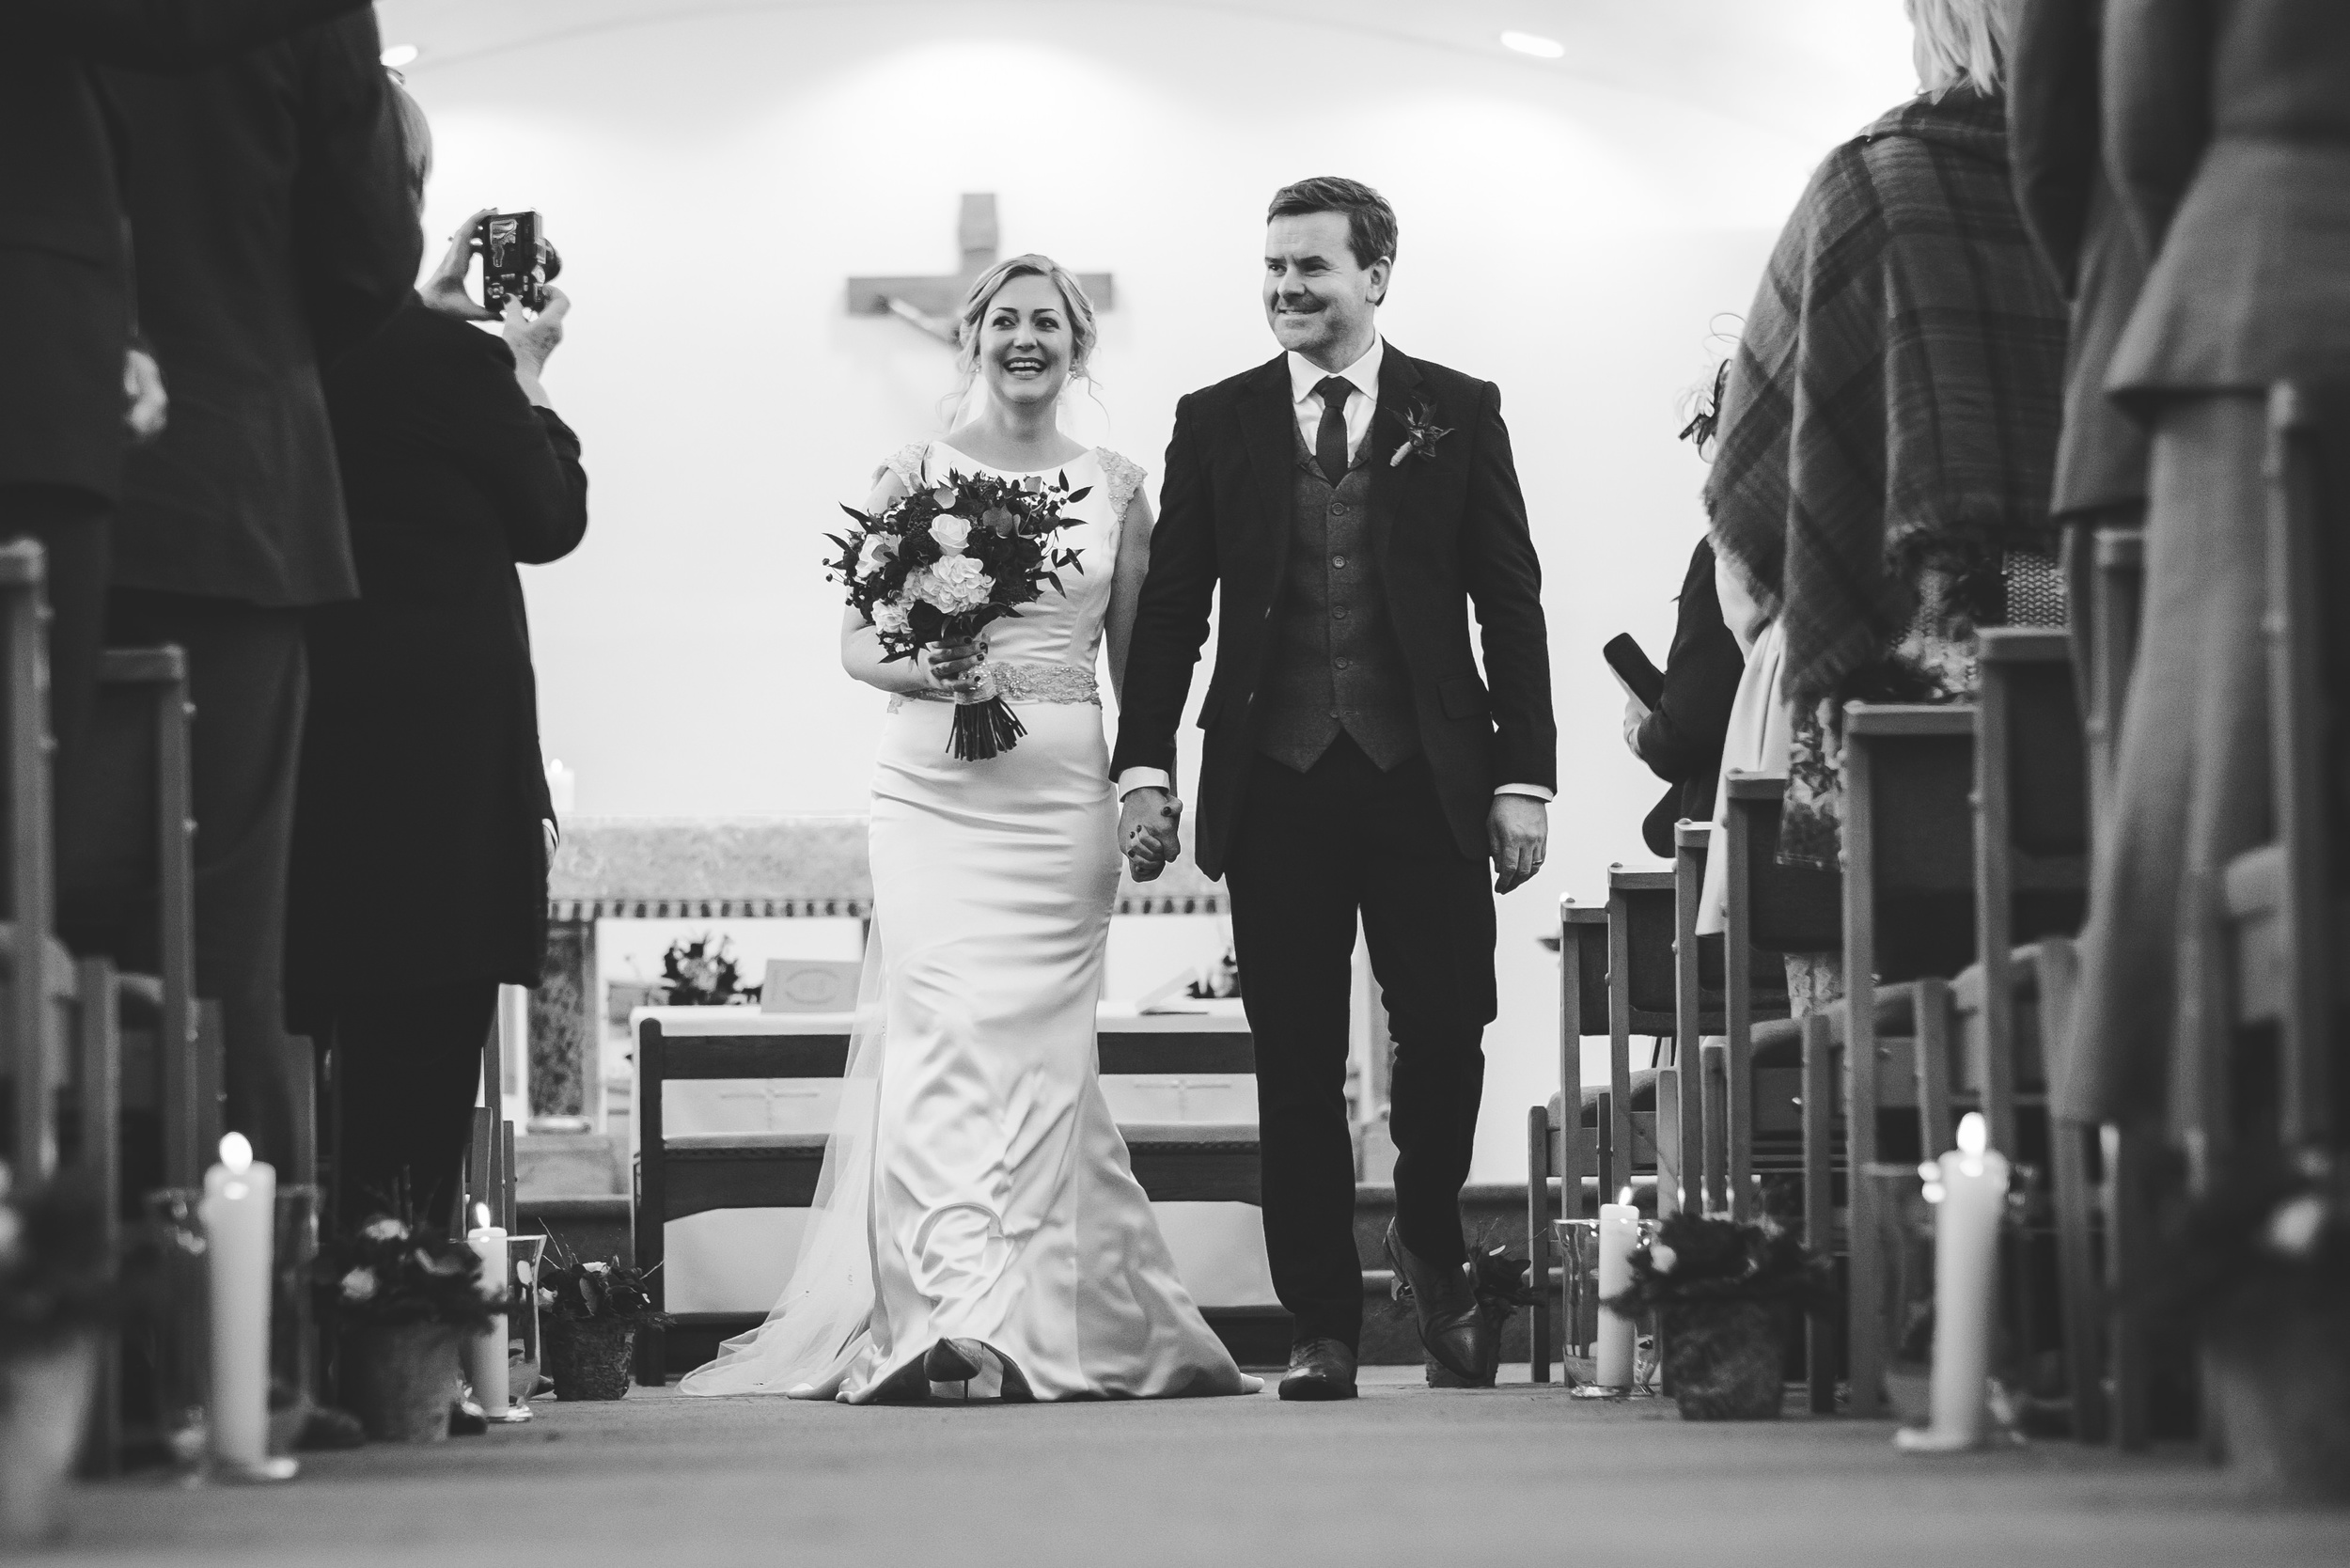 newlyweds walk down the aisle as husband and wife